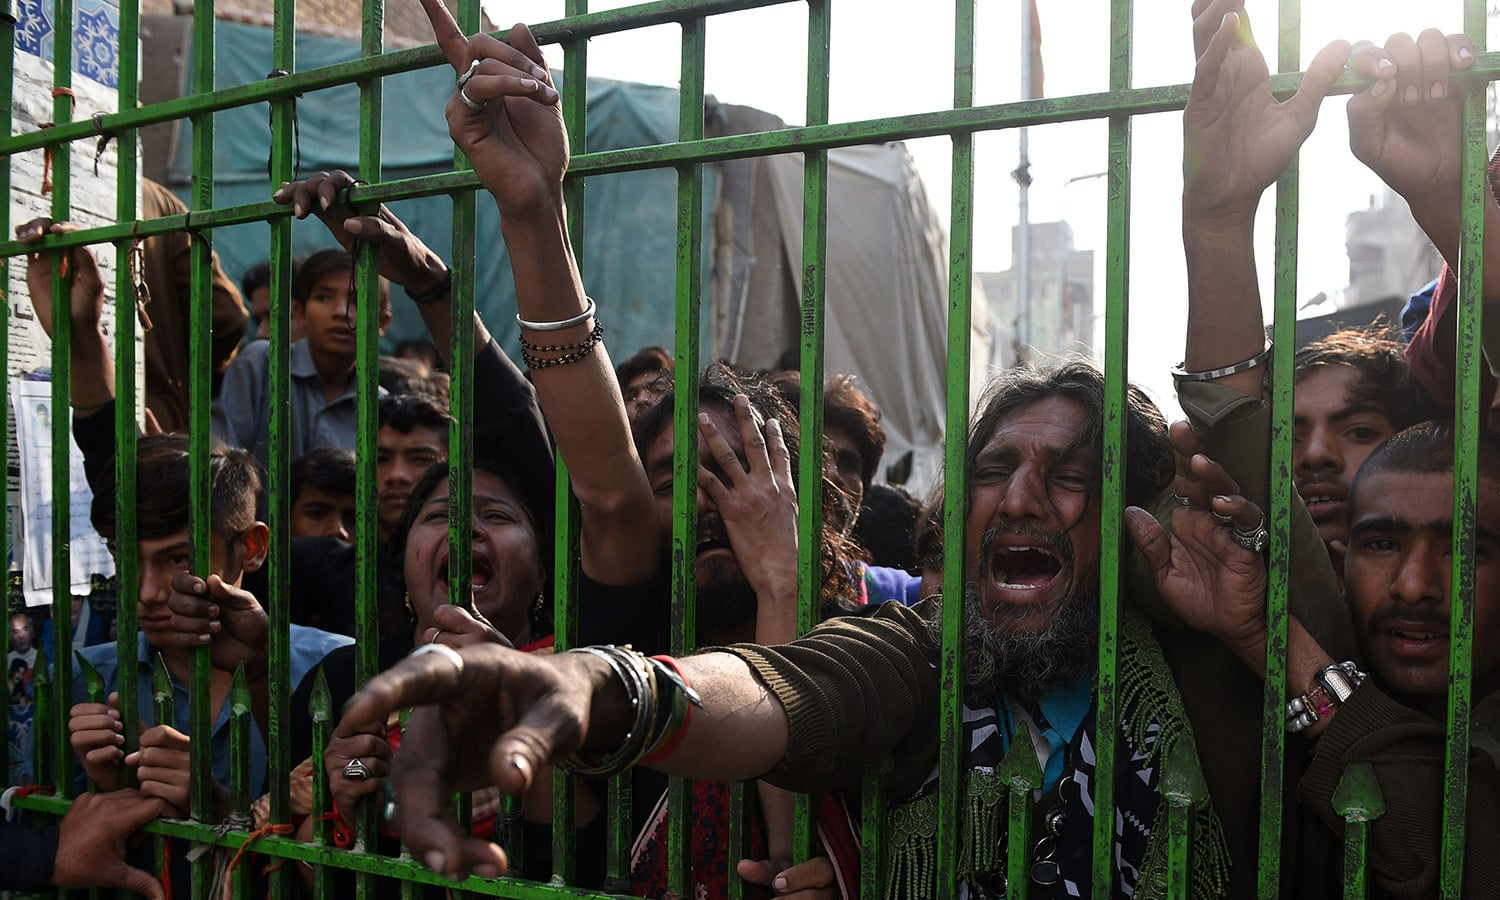 Pakistani devotees react as they gather outside the closed gate of the shrine of 13th century Muslim Sufi saint Lal Shahbaz Qalandar a day after a bomb blast. ─AFP